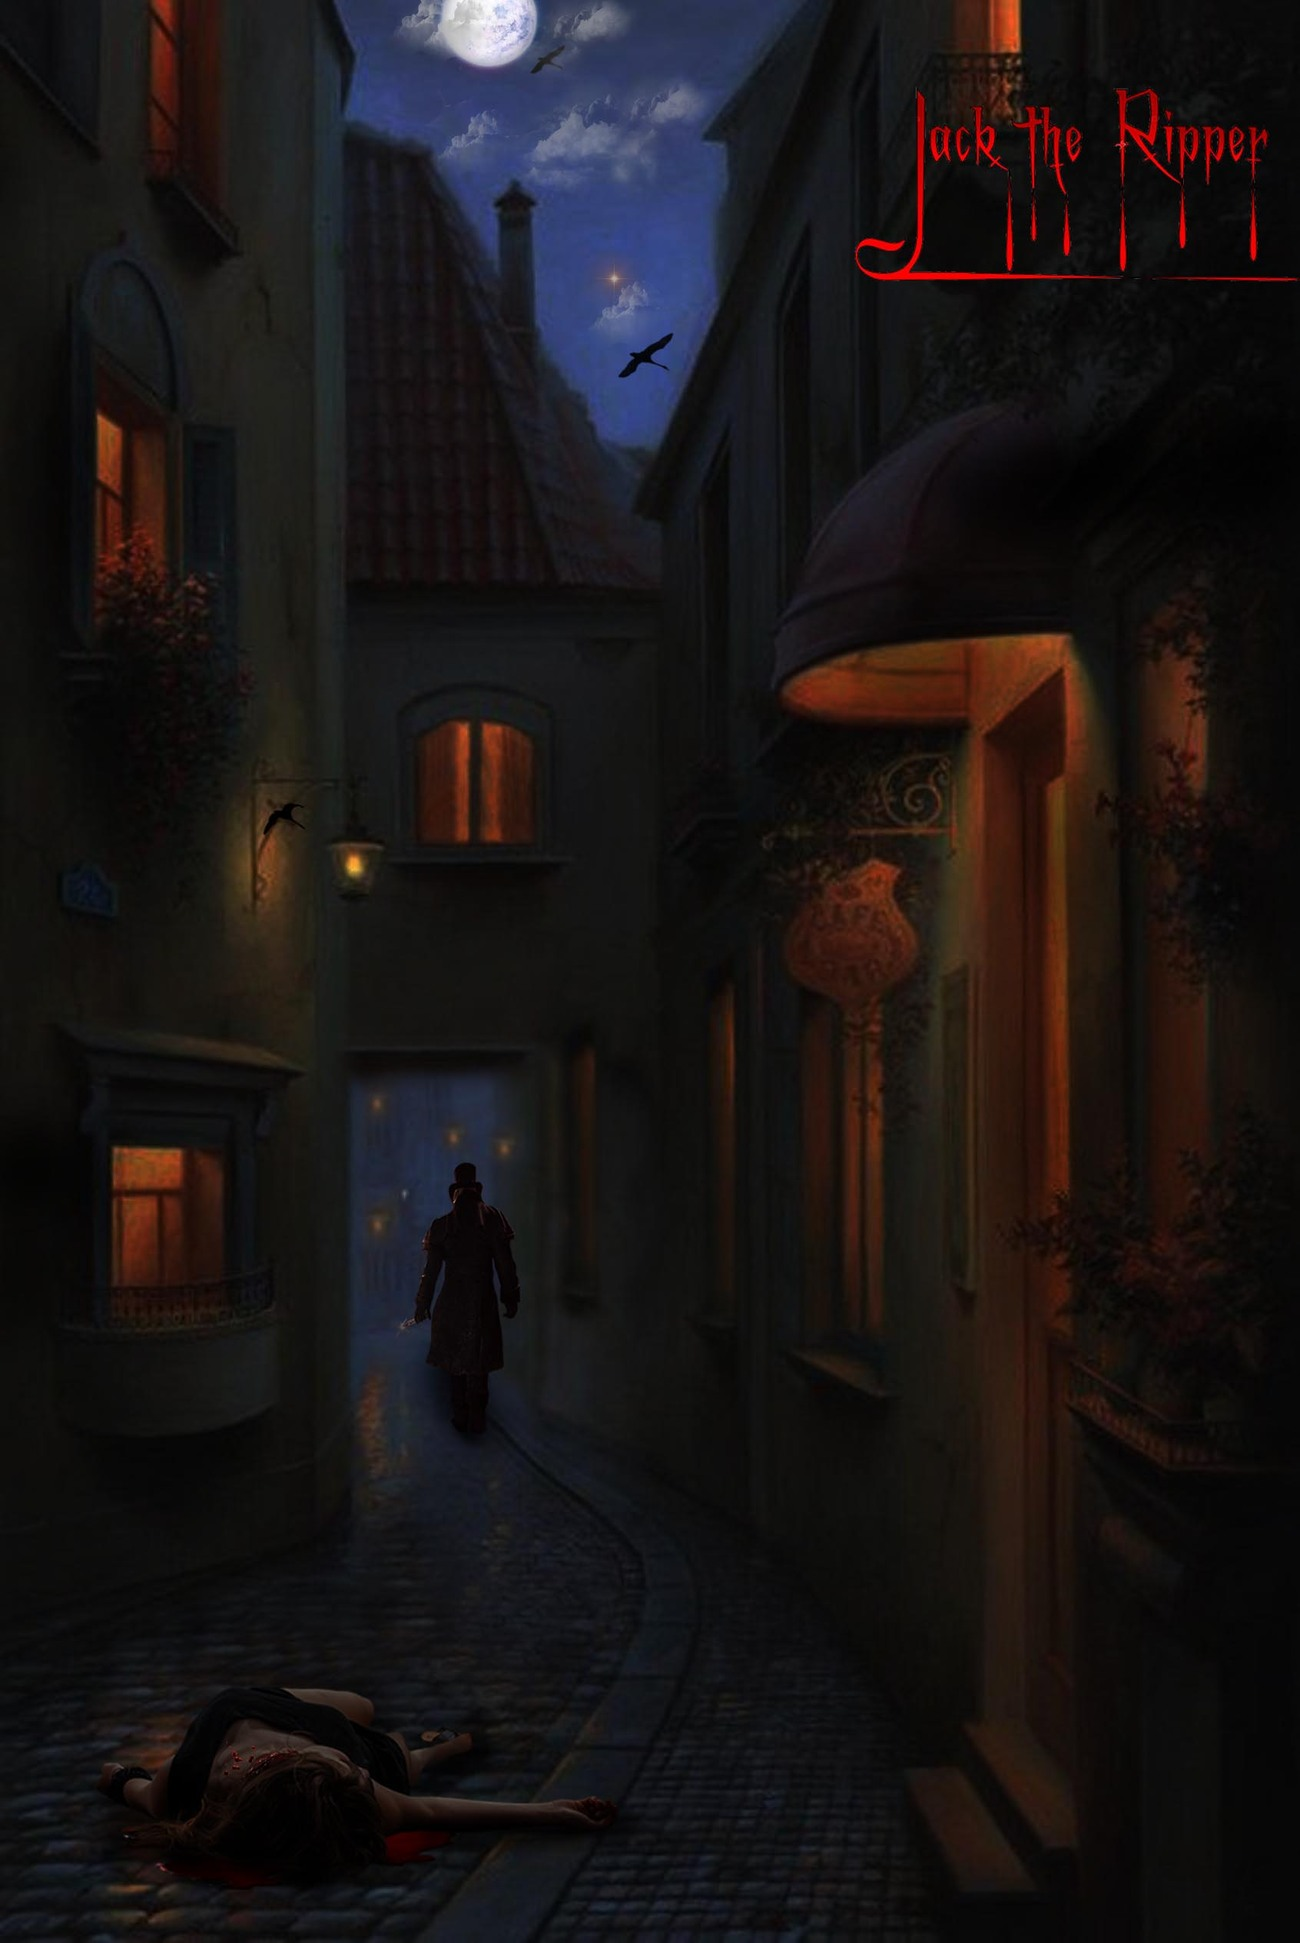 Jack The Ripper by adrie